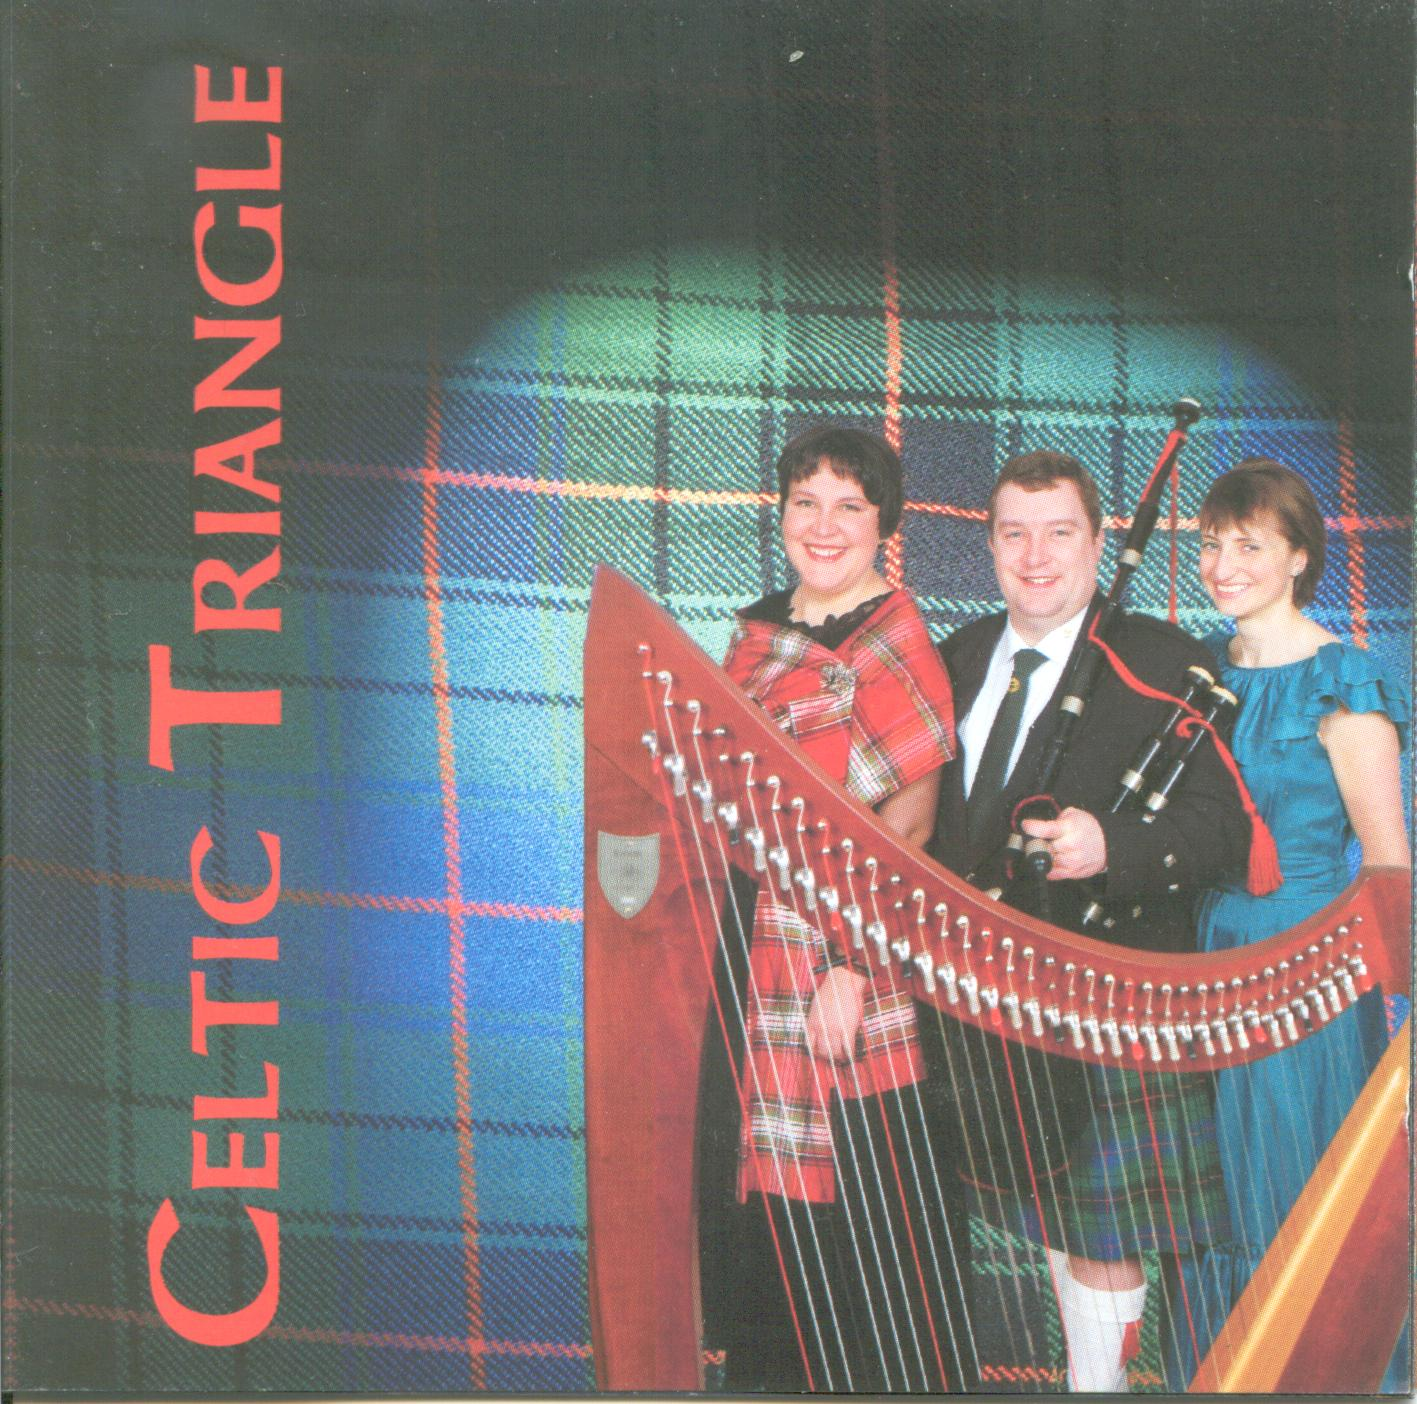 Celtic triangle